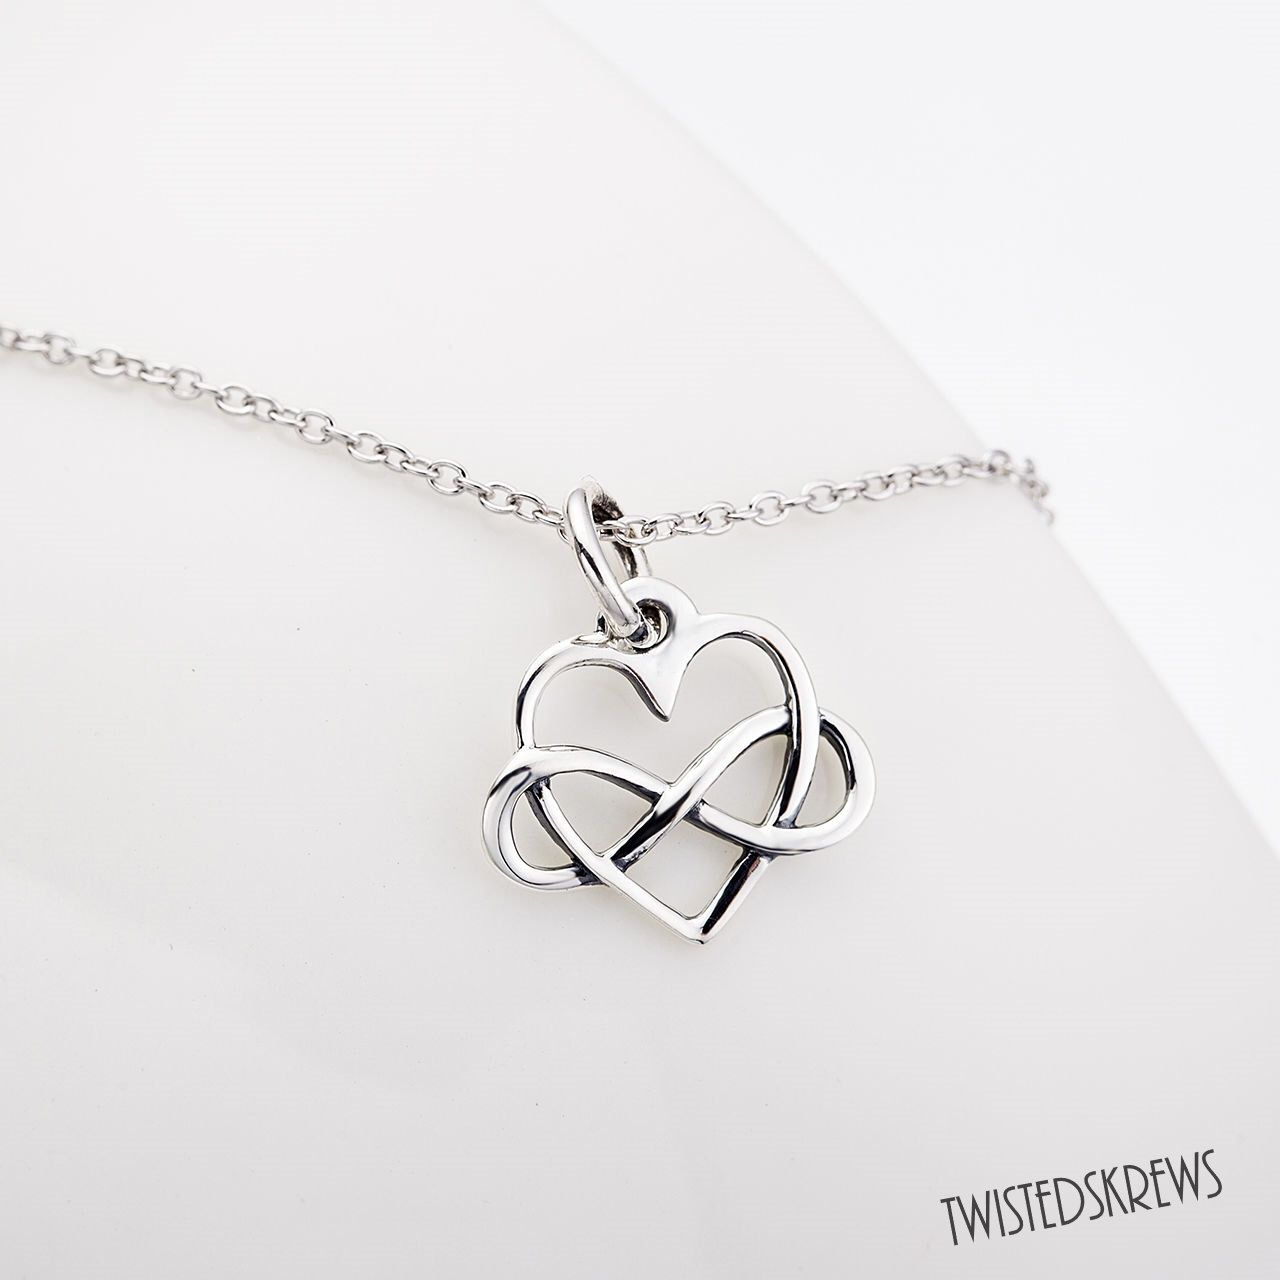 Symbol for submissive choice image symbols and meanings bdsm 925 sterling silver heart infinity polyamorous triad poly bdsm 925 sterling silver heart infinity polyamorous biocorpaavc Choice Image